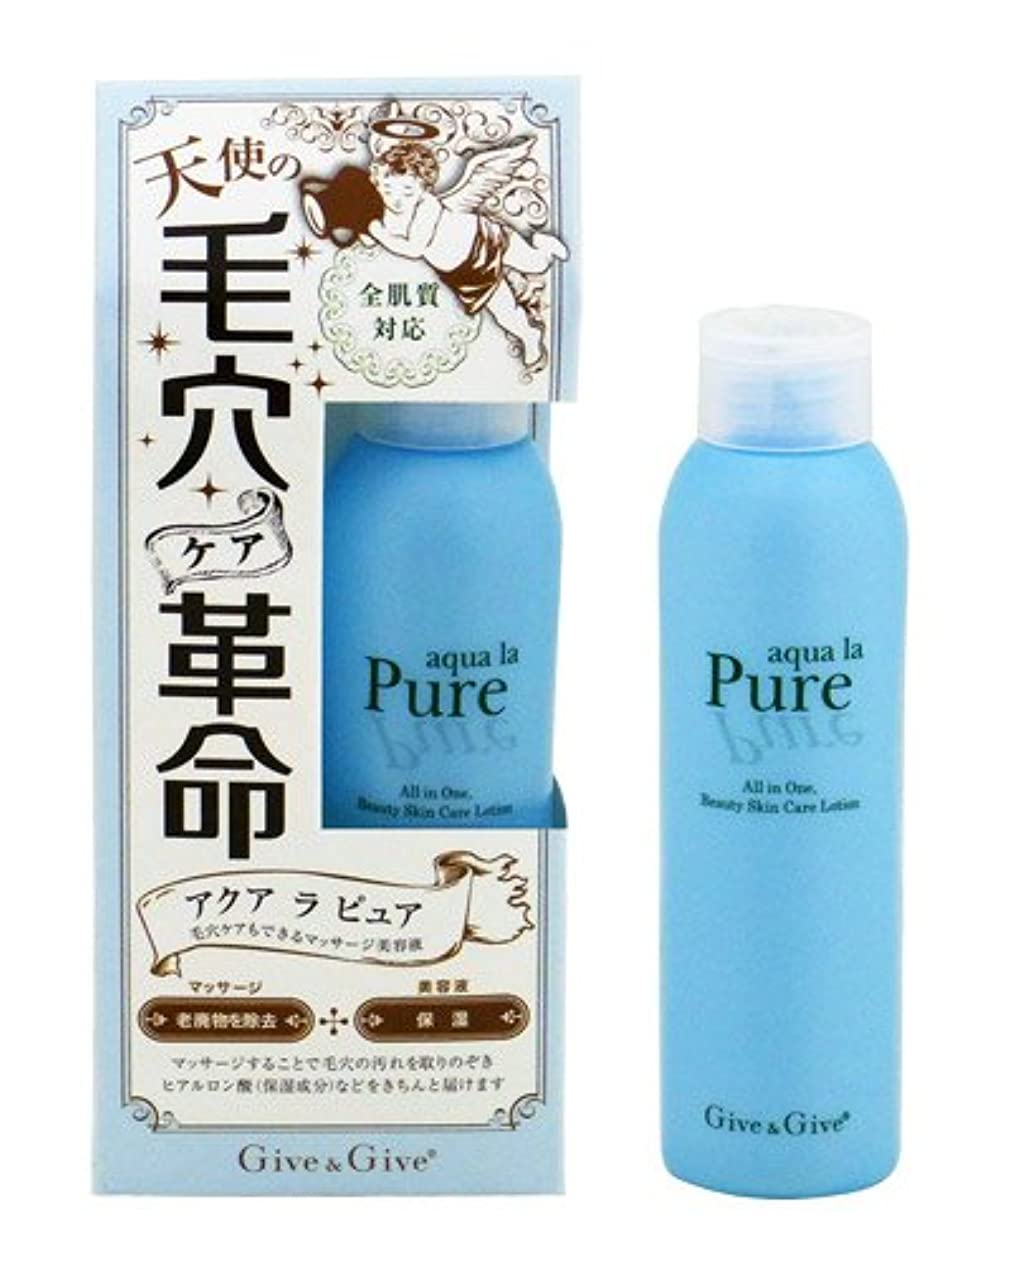 Give&Give アクア ラ ピュアL 80ml